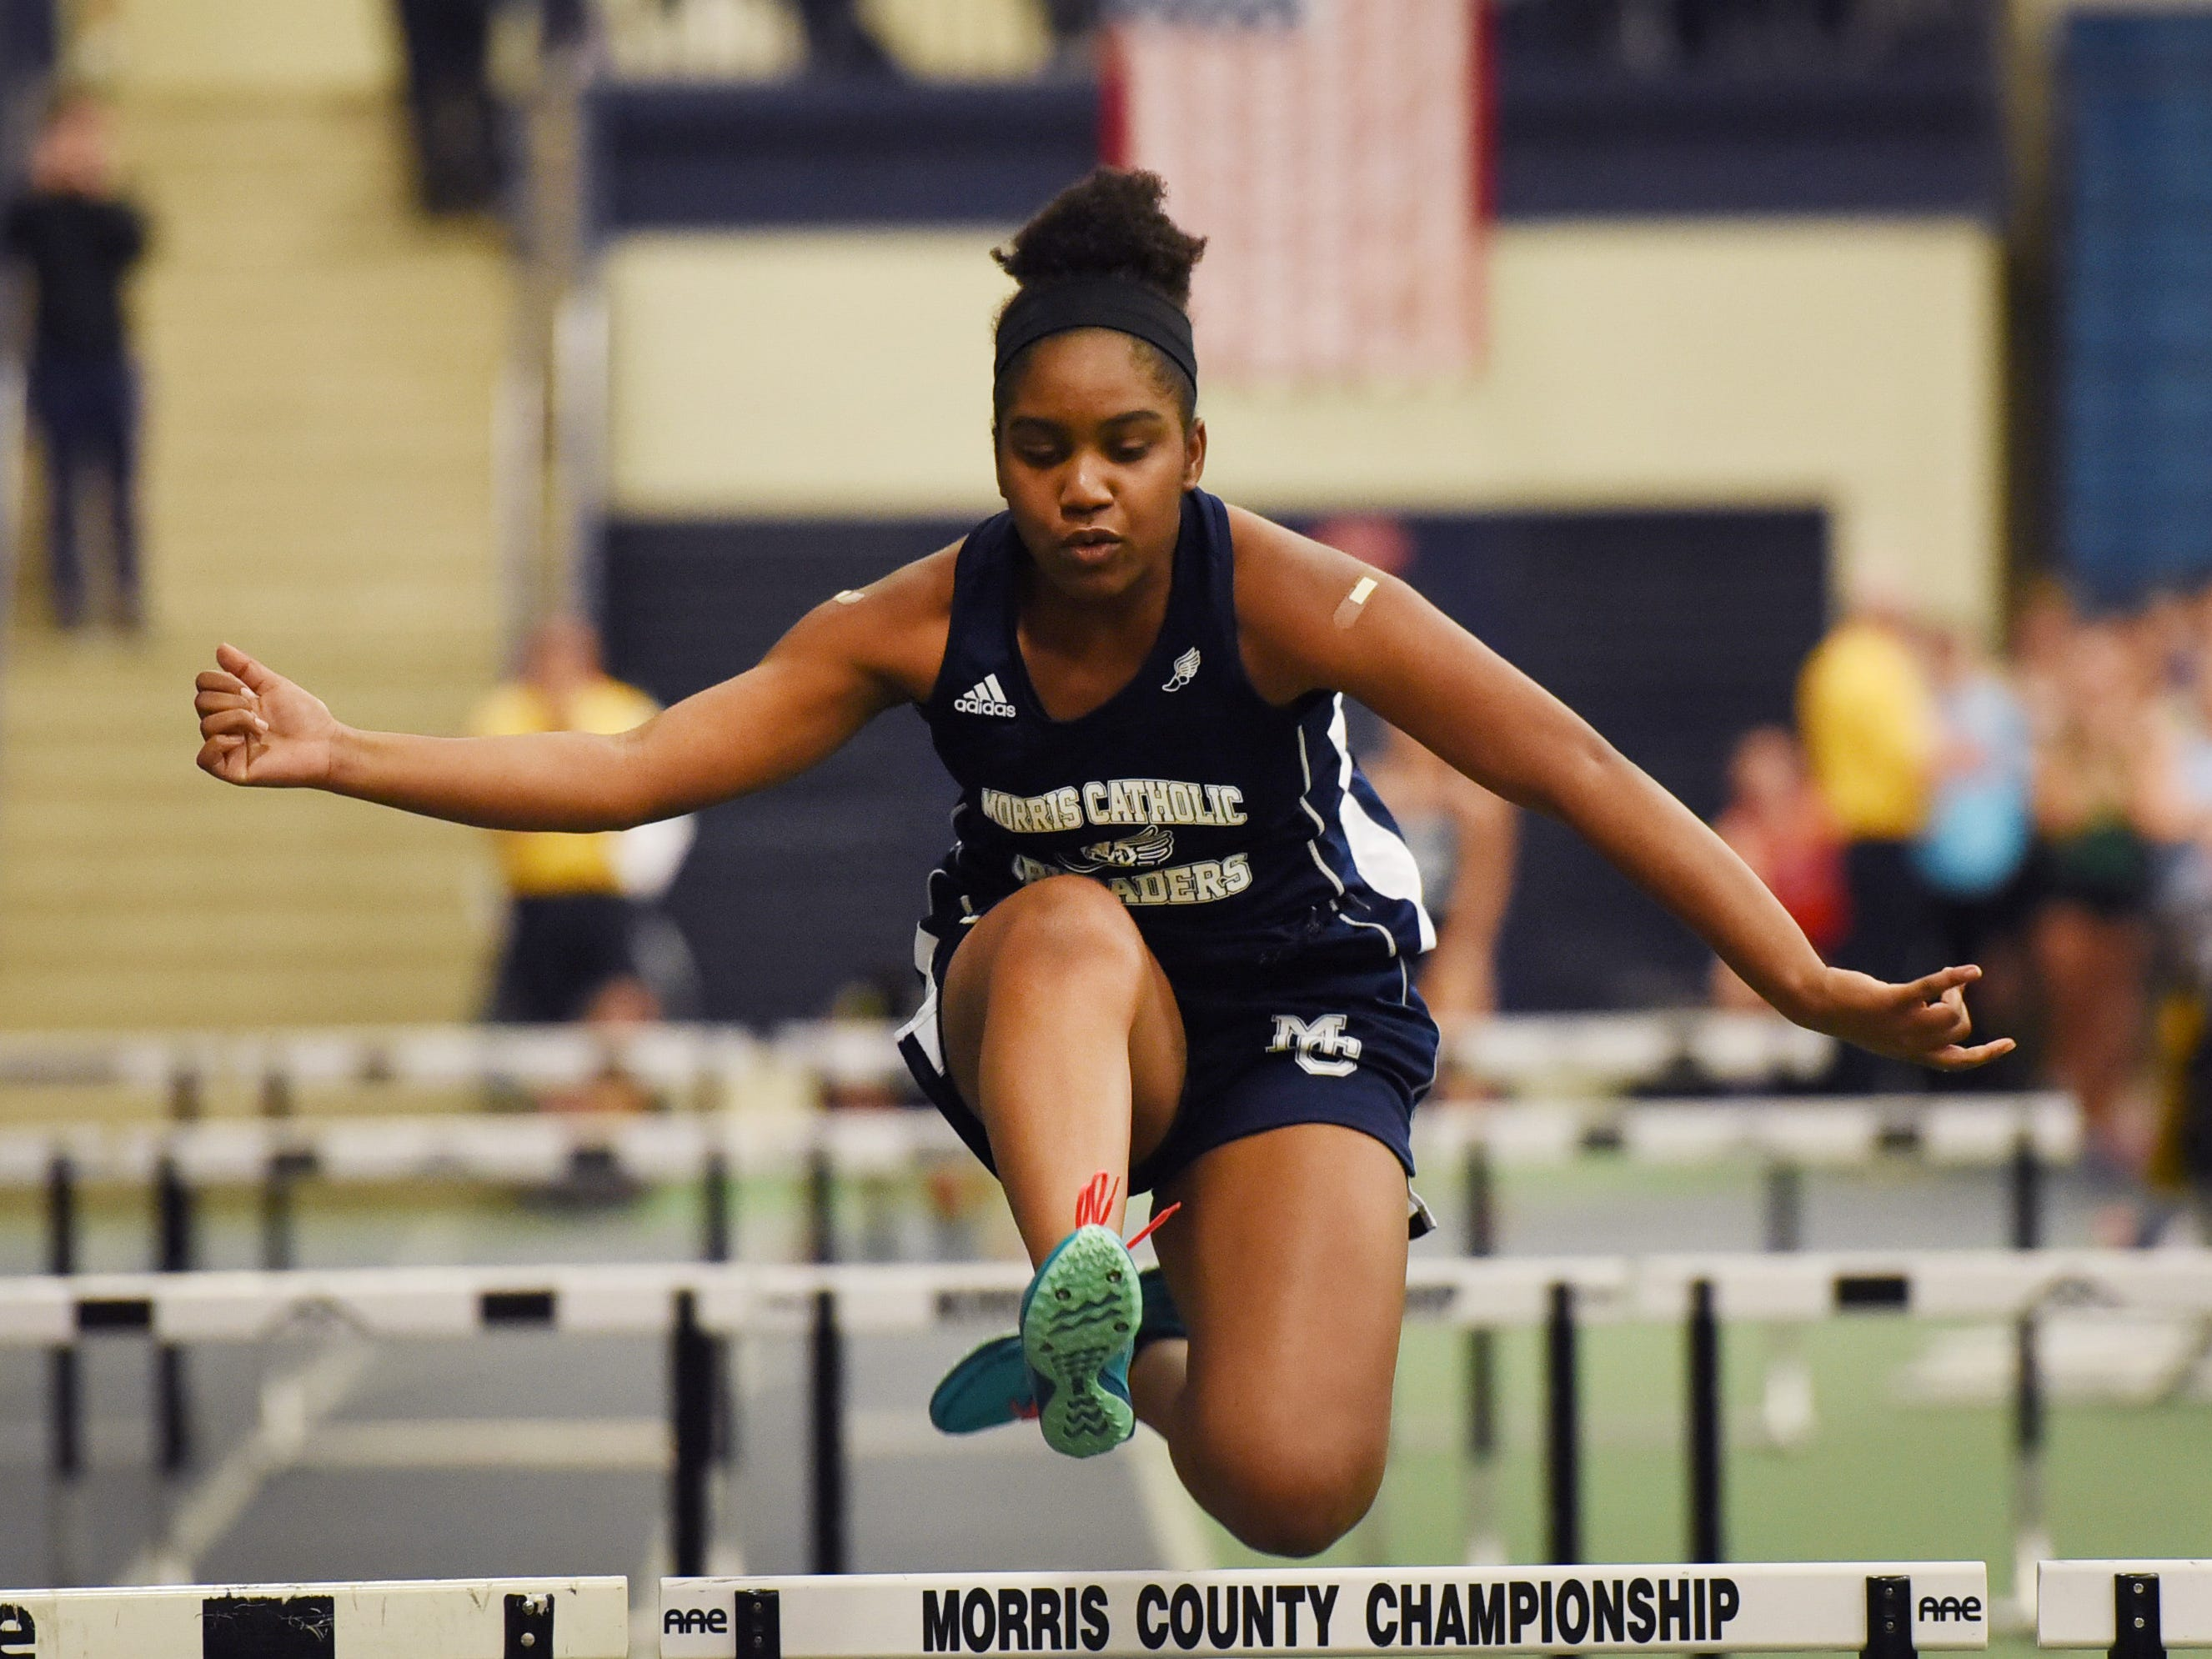 Morris Catholic sophomore Sidney Enemuo clears a hurdle during Morris County Relays at Drew University in Madison on 01/09/19.